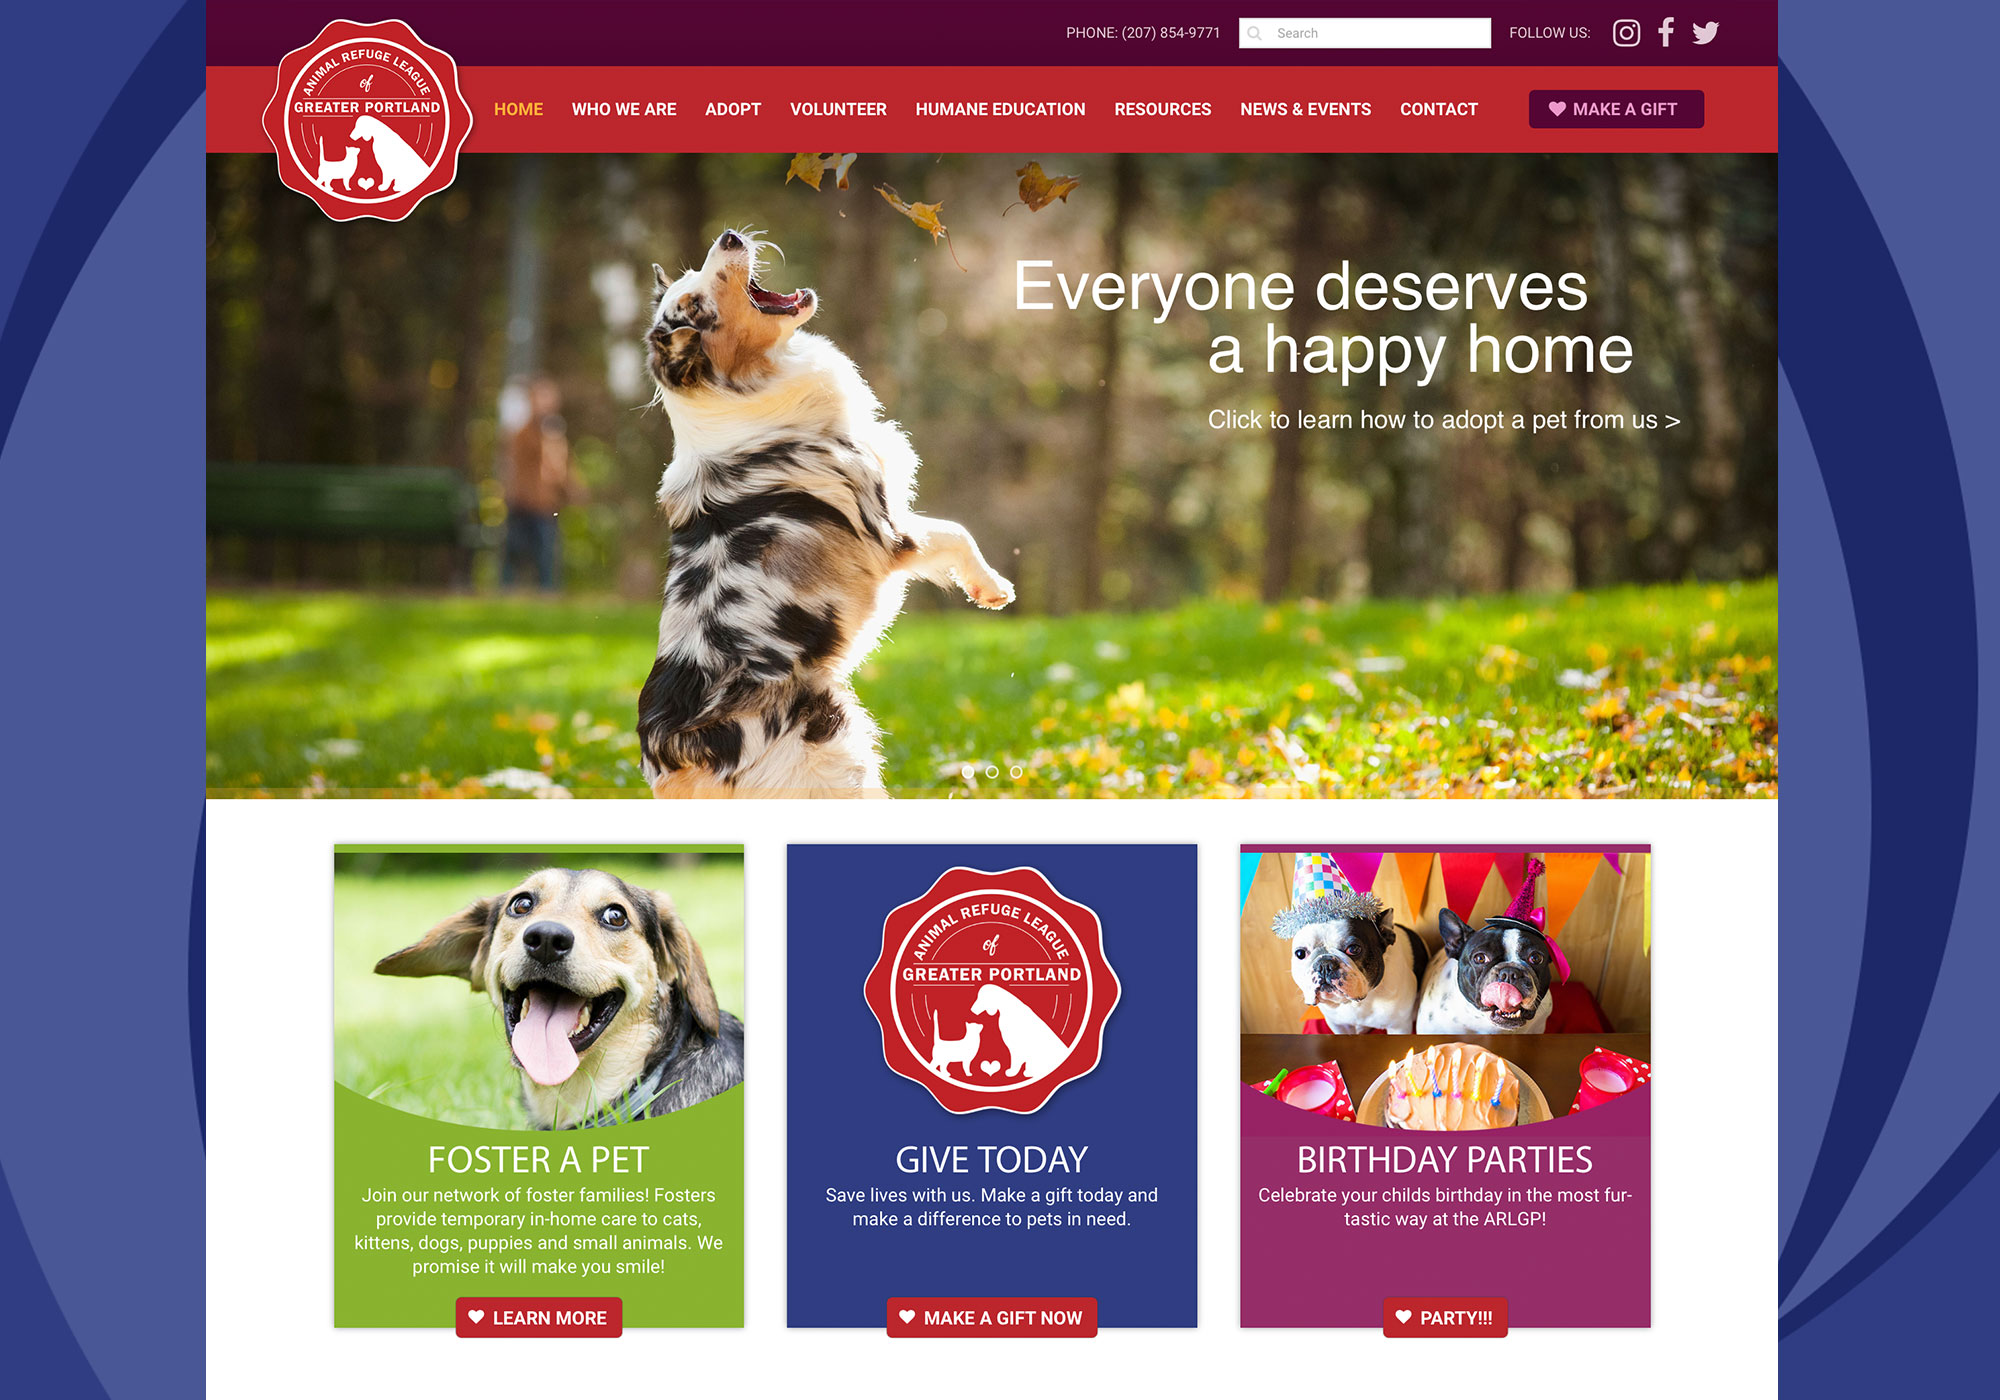 A closeup of the homepage for Animal Refuge League of Greater Portland designed by SlickFish Studios in Portland, Maine.